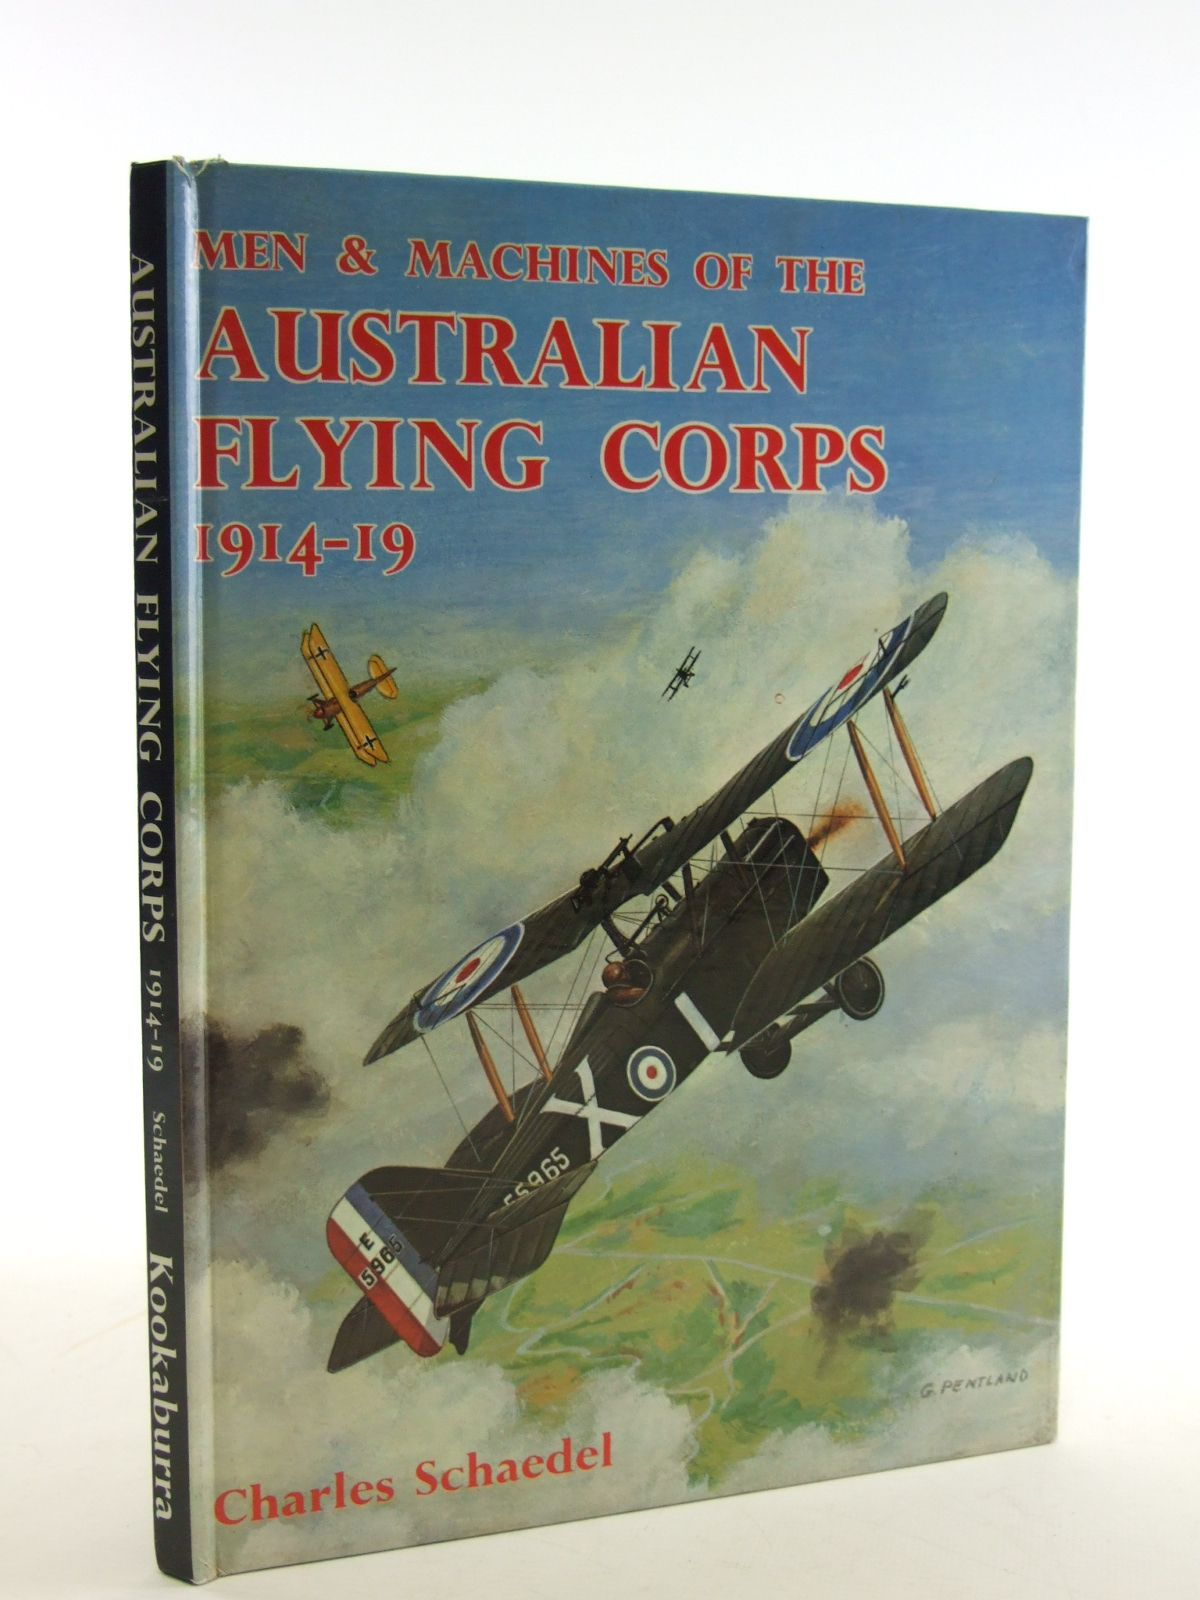 Photo of MEN & MACHINES OF THE AUSTRALIAN FLYING CORPS 1914-19 written by Schaedel, Charles illustrated by Schaedel, Charles published by Kookaburra Technical Publications (STOCK CODE: 1602837)  for sale by Stella & Rose's Books